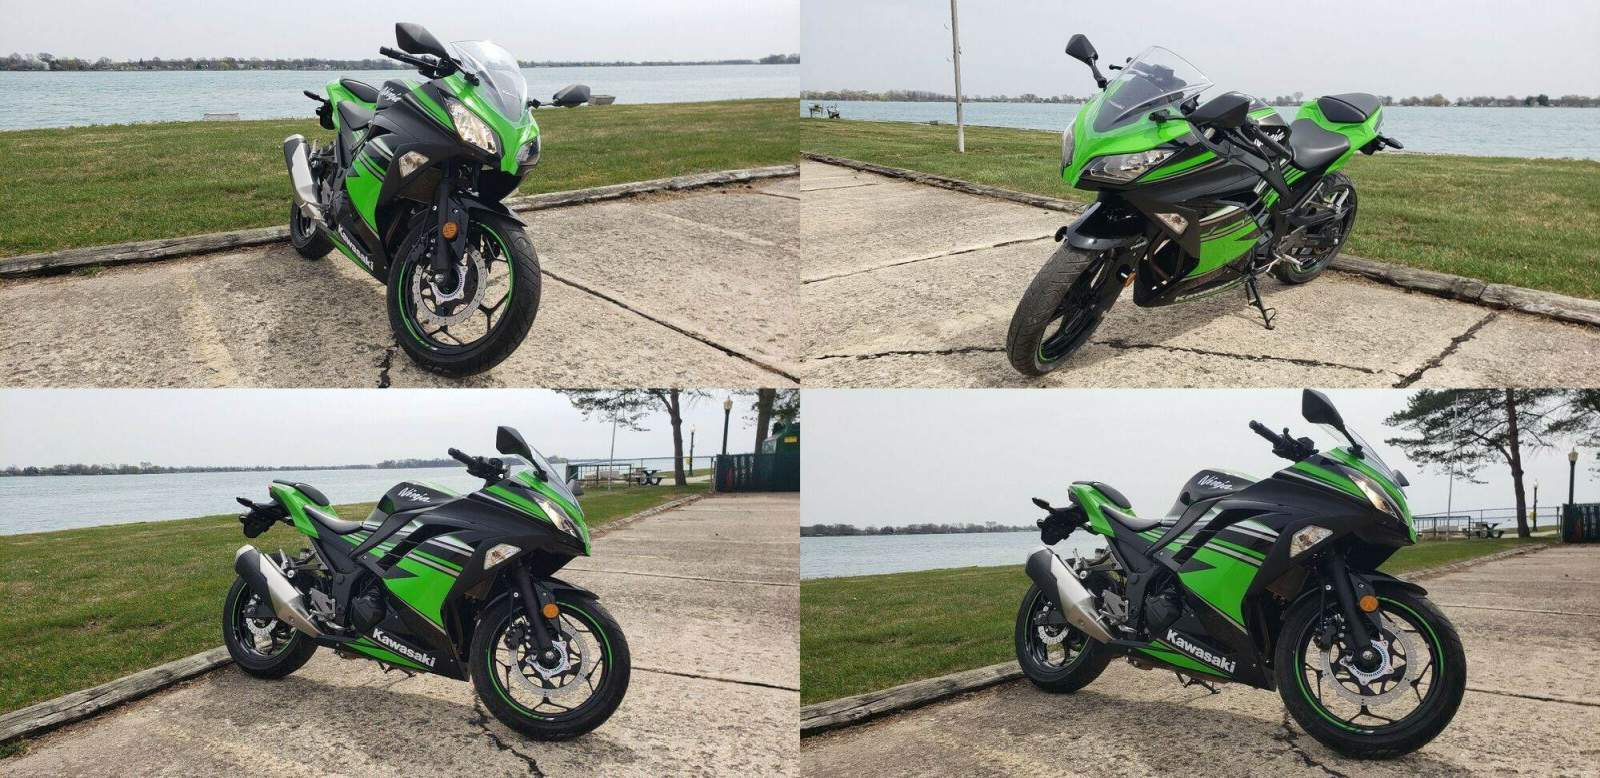 2016 Kawasaki Ninja  for sale craigslist